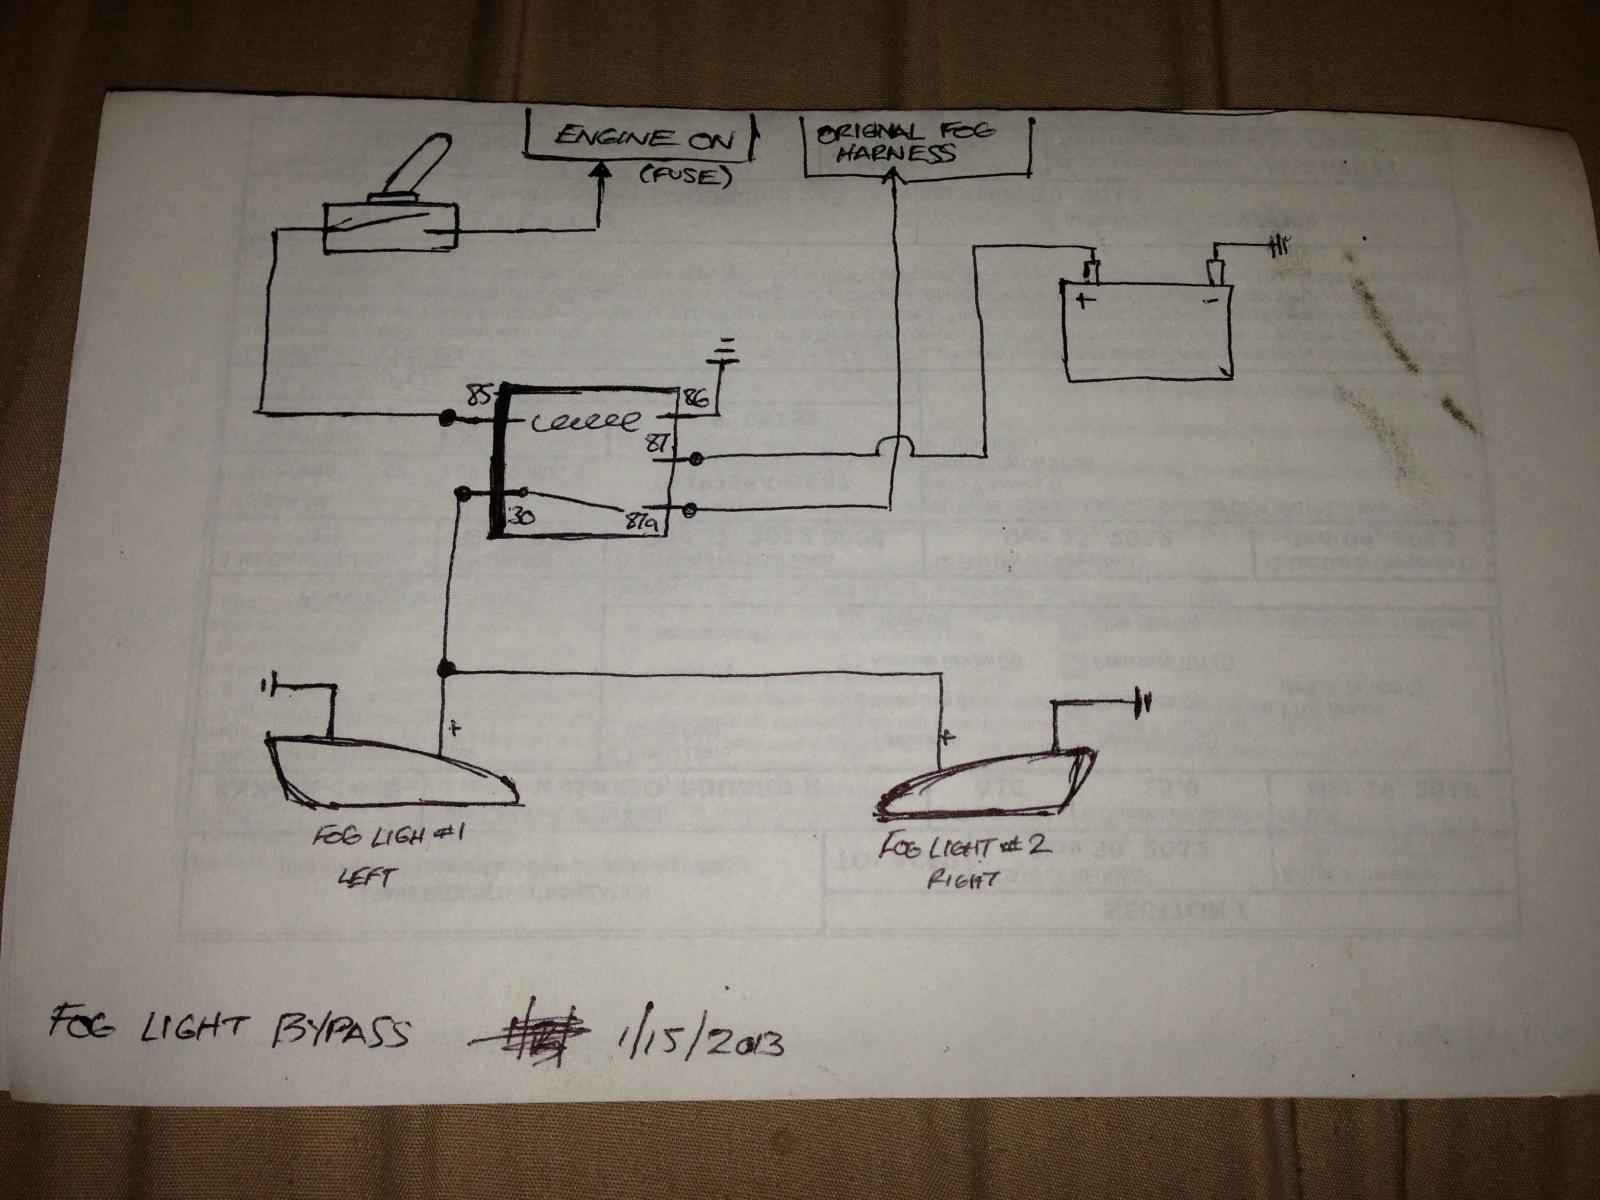 2012 Mazda 3 Fog Light Wiring Diagram Door Simple To Bypass Foglights Works W O Headlights Or Rh Optimaforums Com Stereo